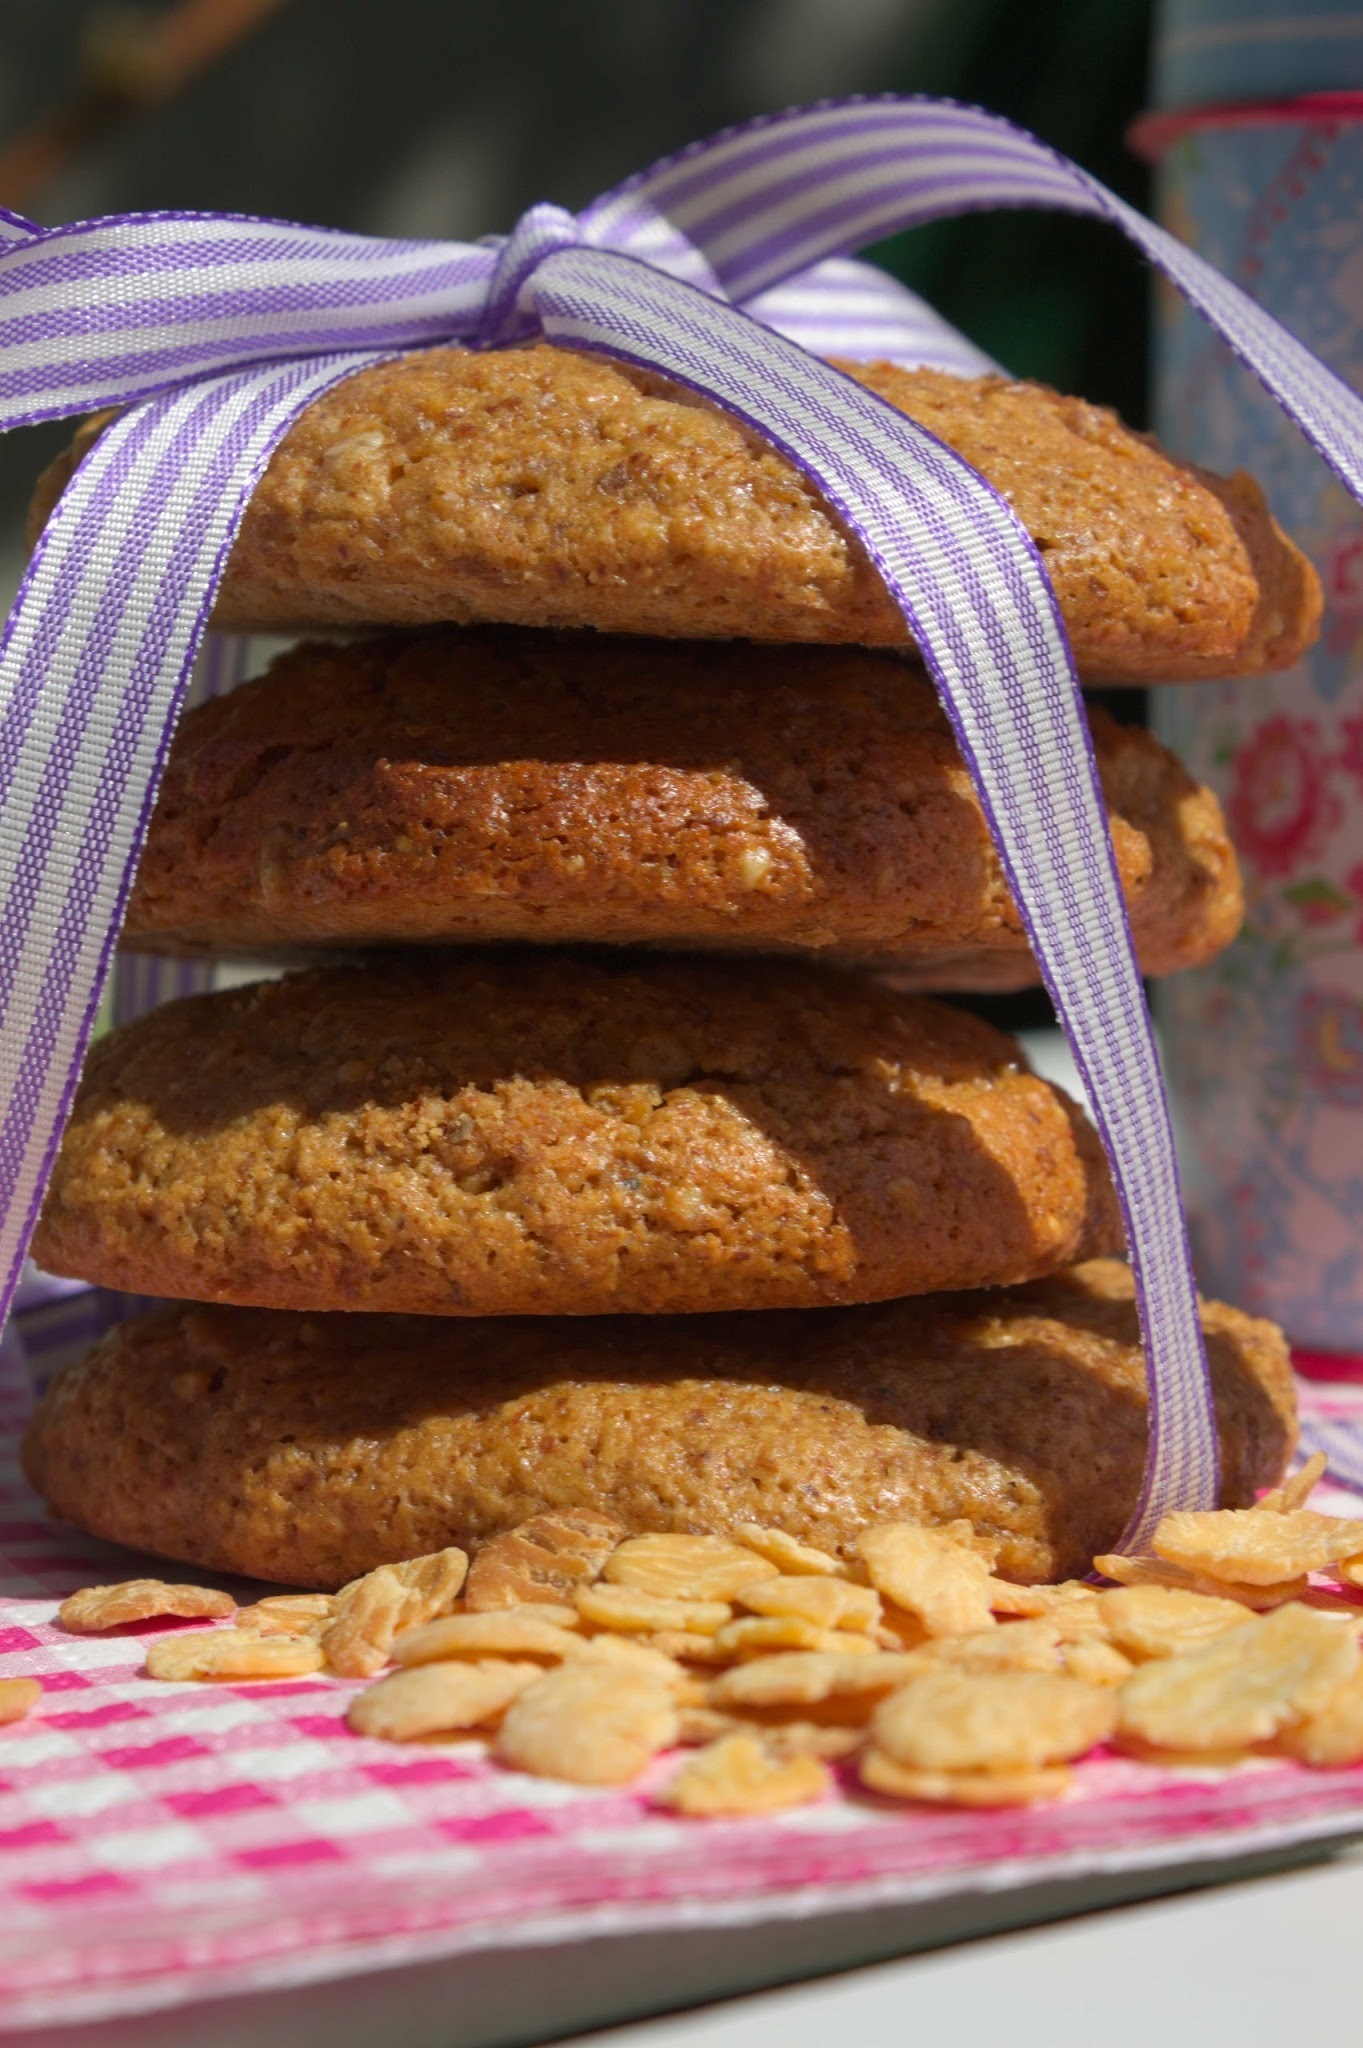 Der Low Carb Liebling der Woche: Oatmeal Cookies ohne Hafer